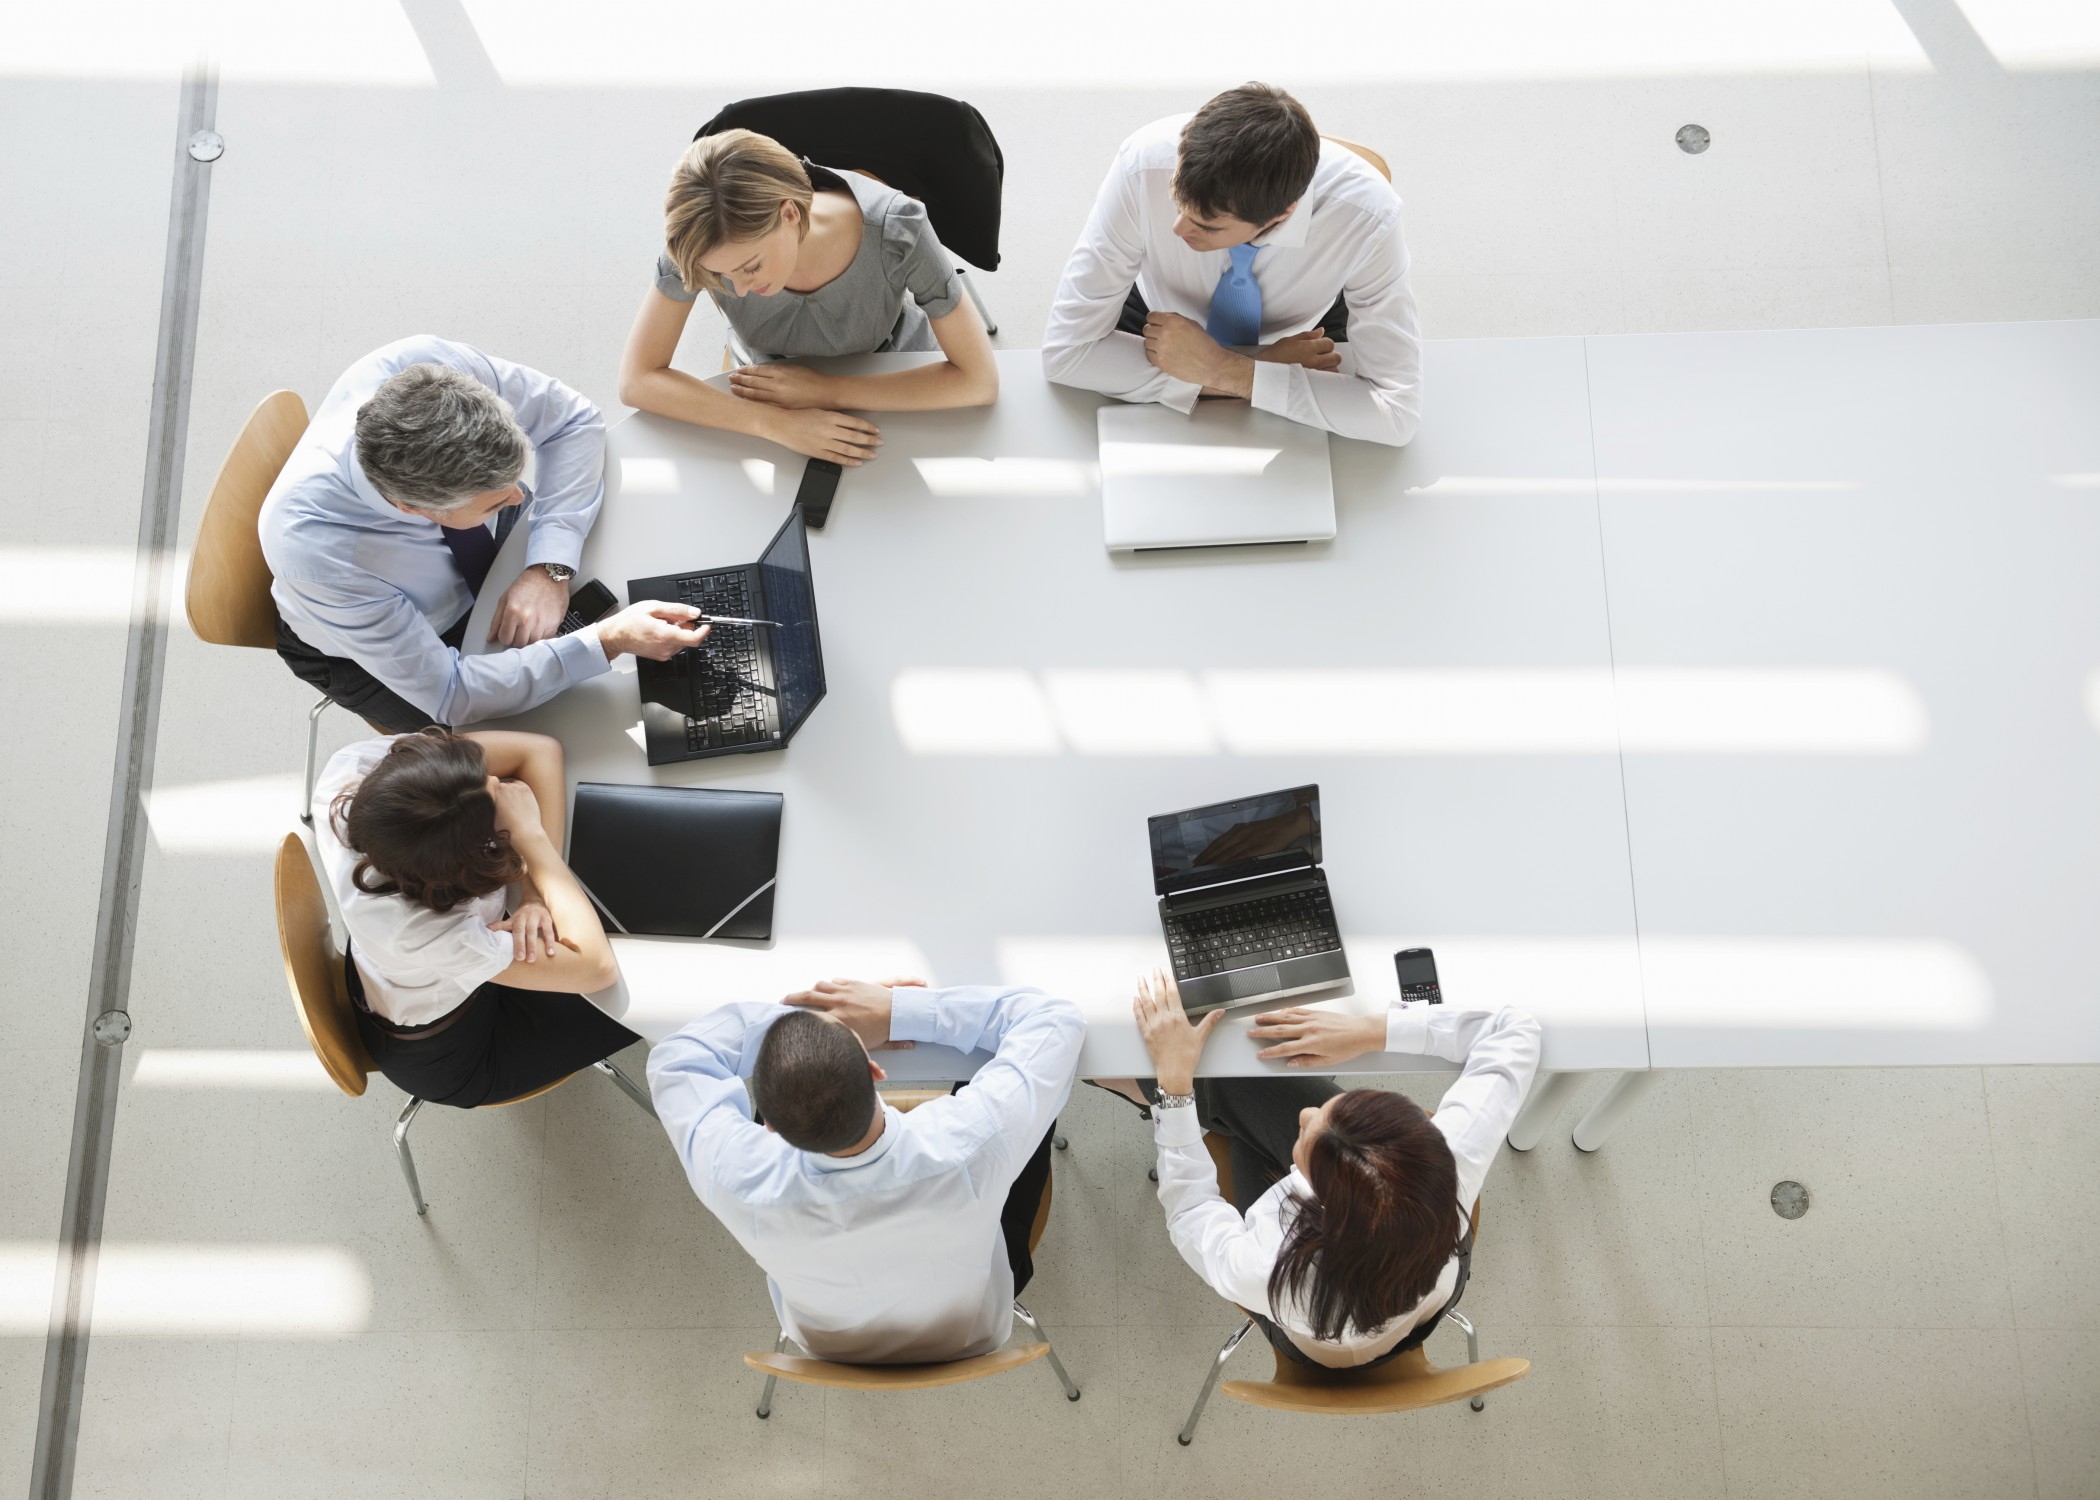 10 Trends that Will Dominate the Workplace in 2015